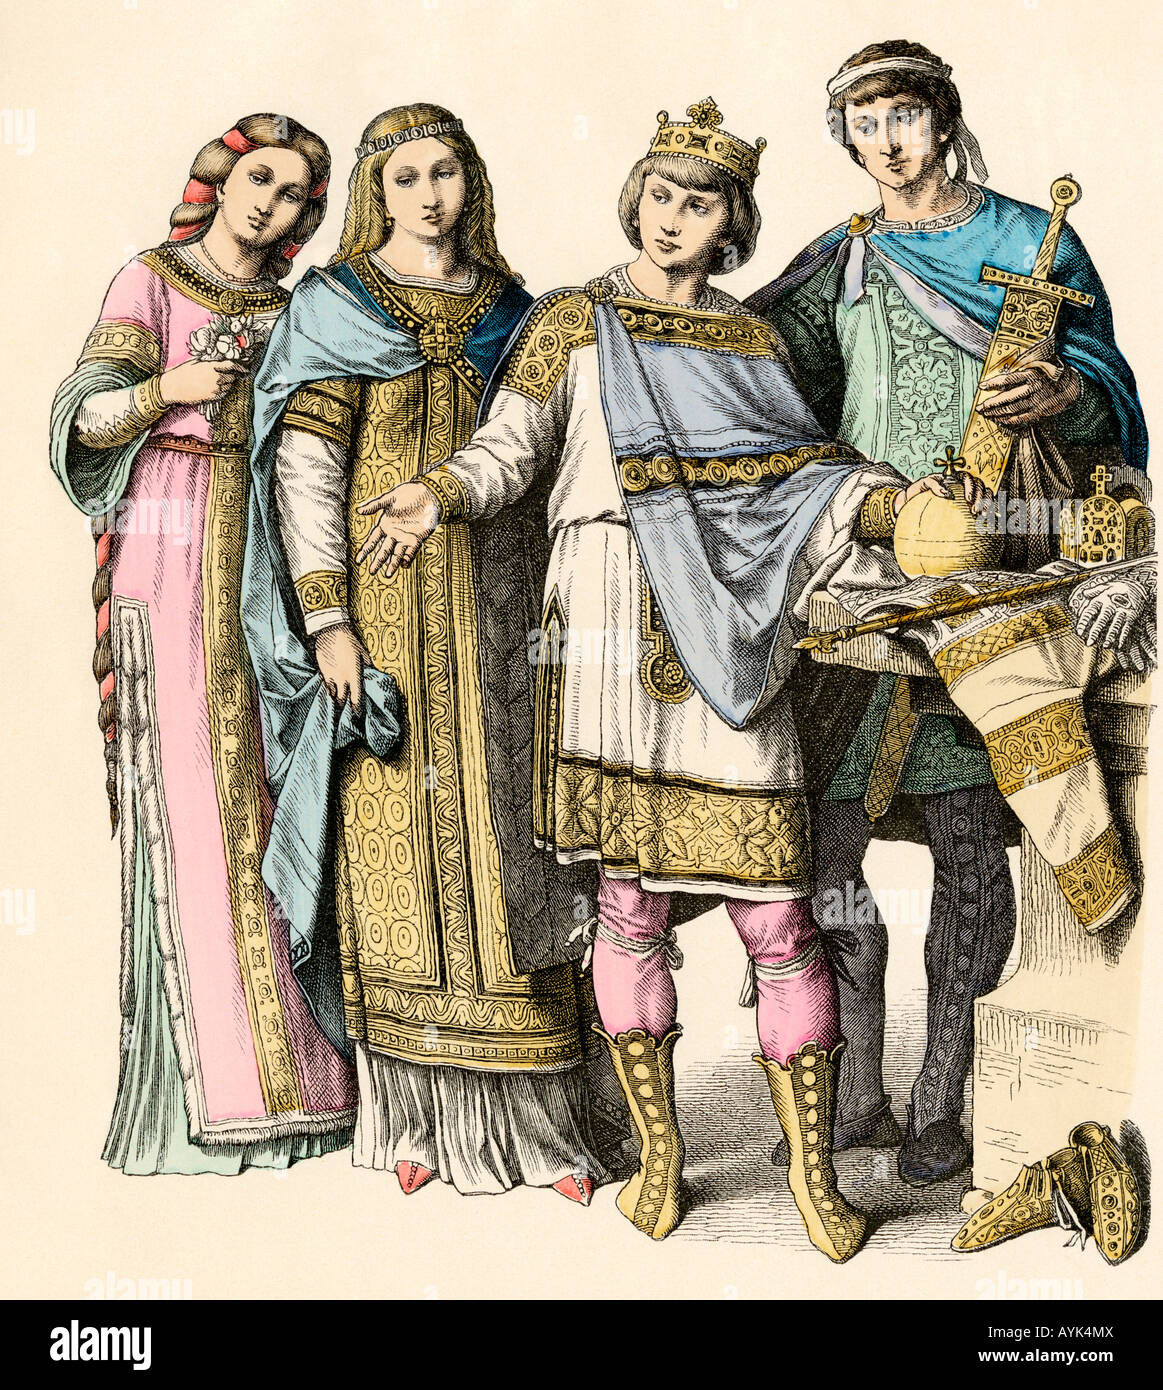 a biography of charlemagne a king of the franks Learn more about charlemagne, the king of the franks who united western  europe for the first time since the fall of the roman empire, at biographycom.